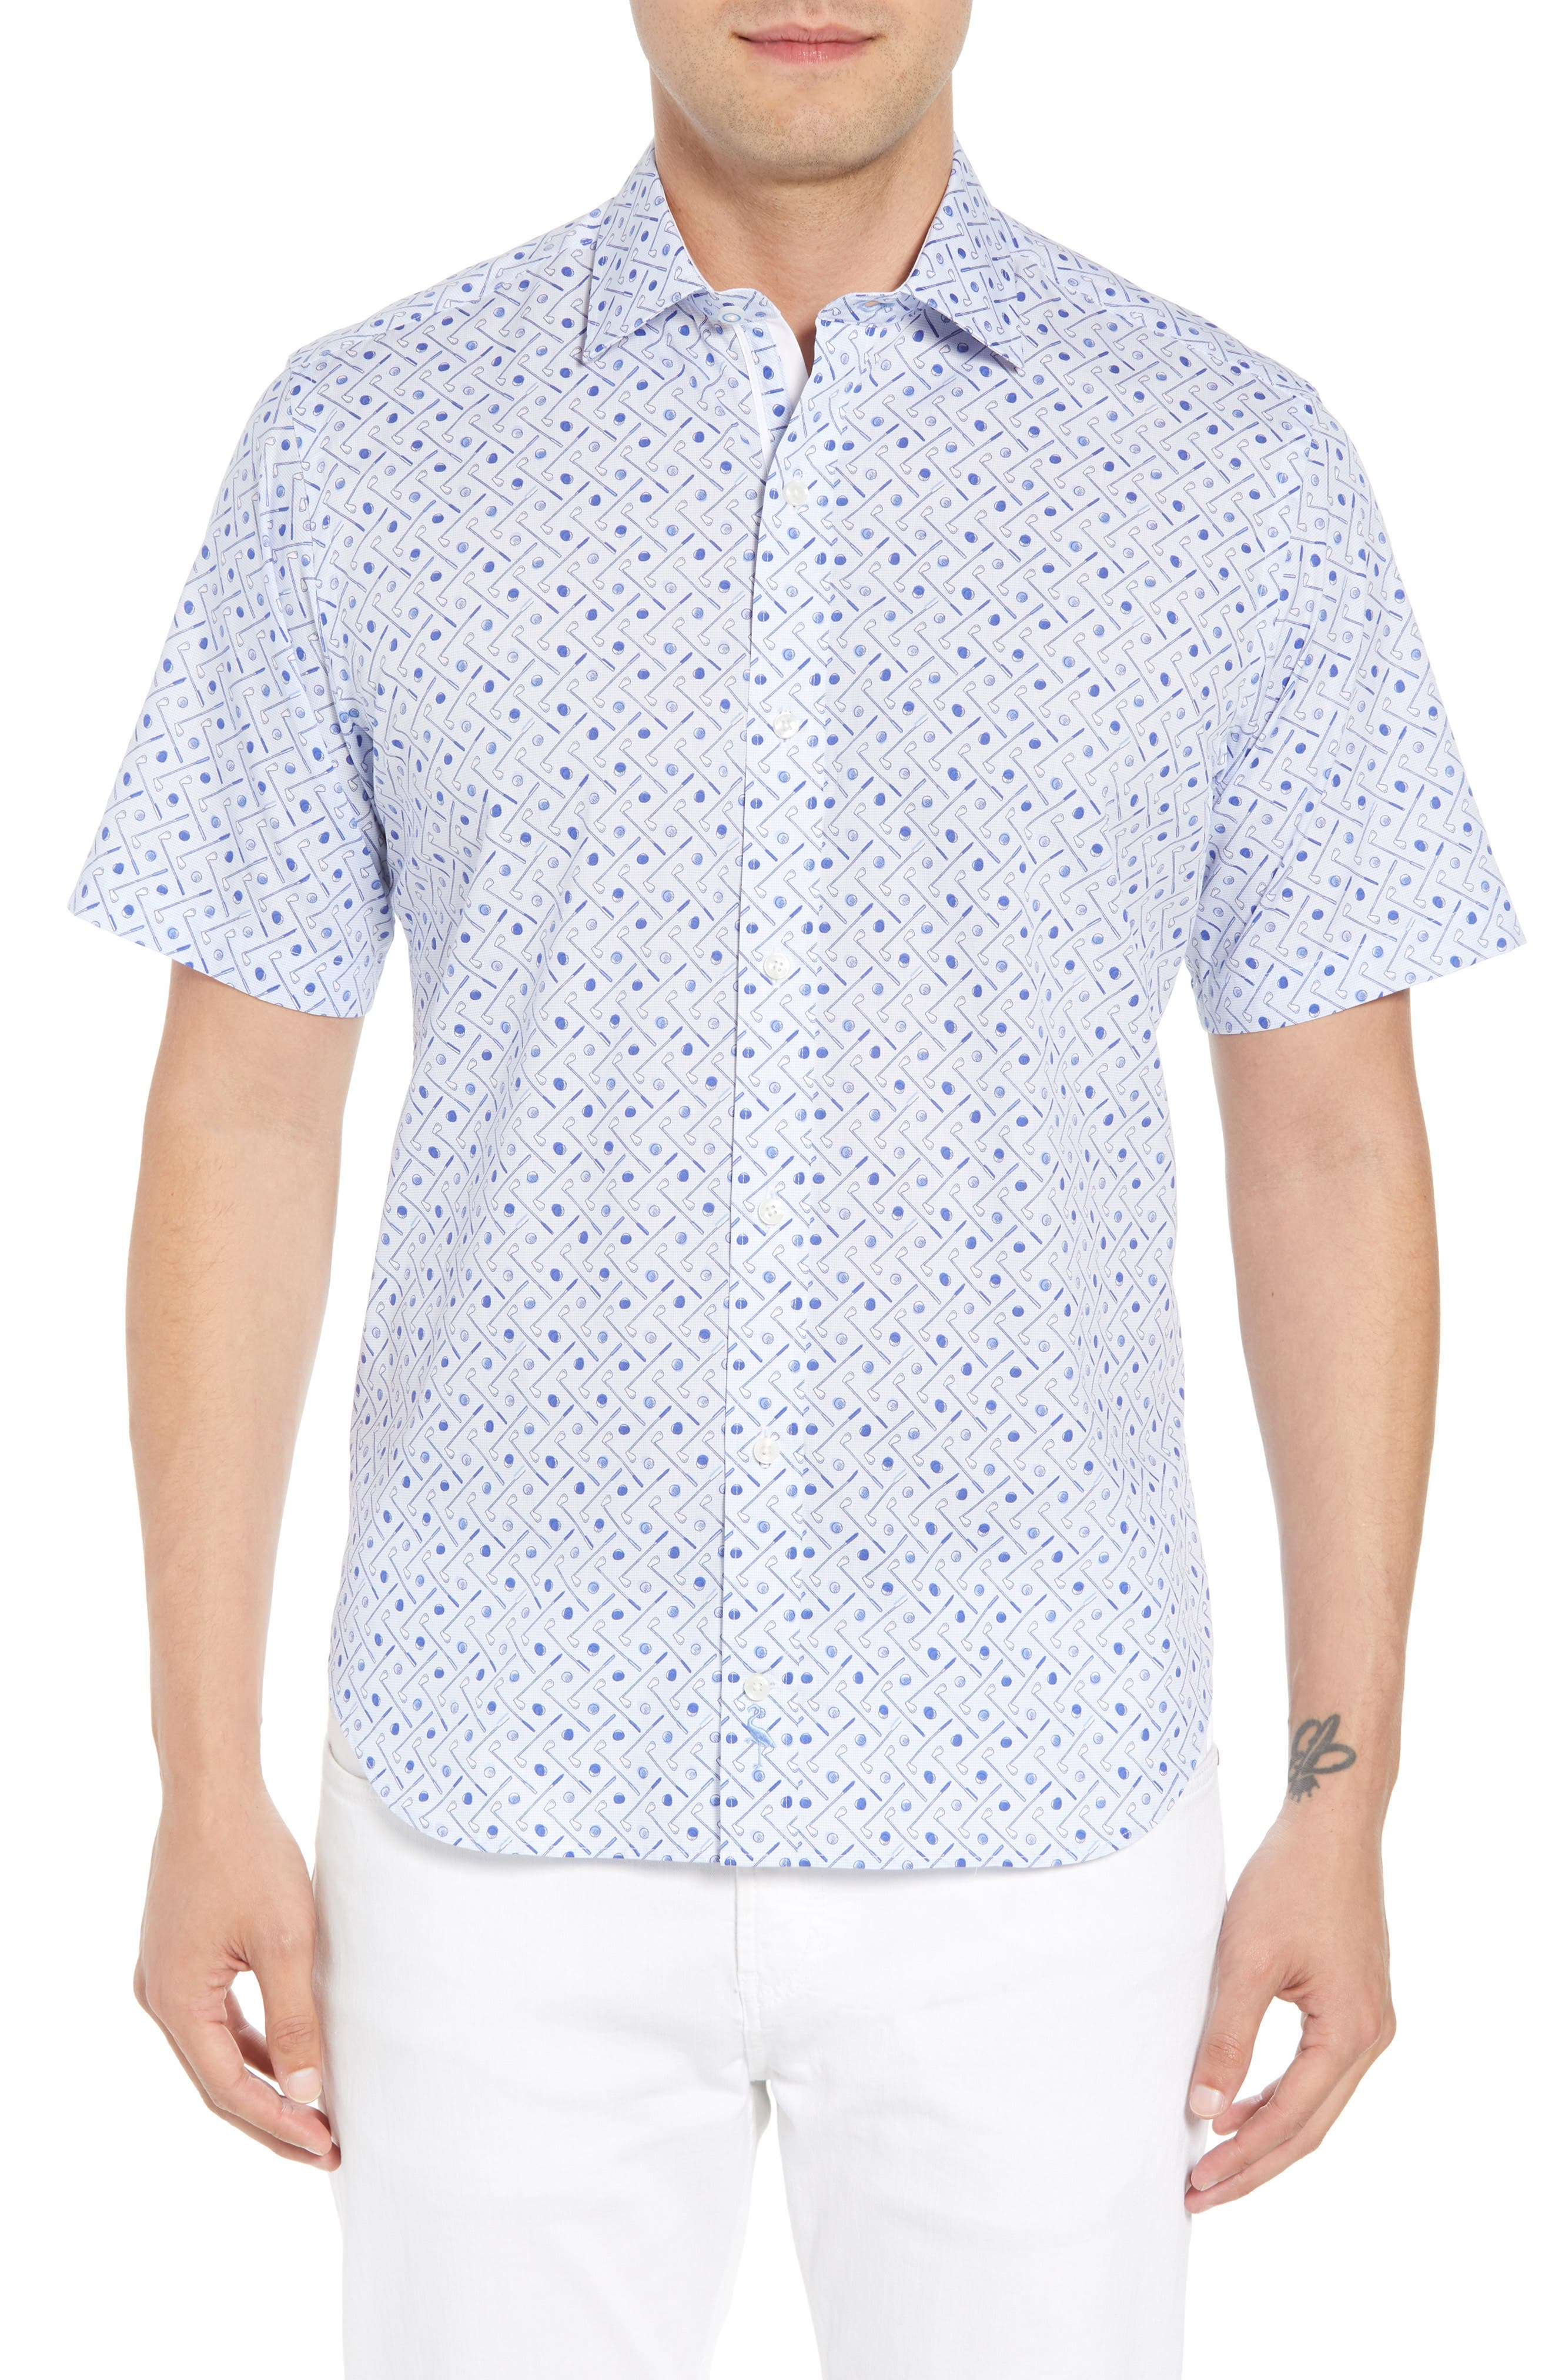 Ash Regular Fit Golf Print Sport Shirt,                         Main,                         color, Light Blue